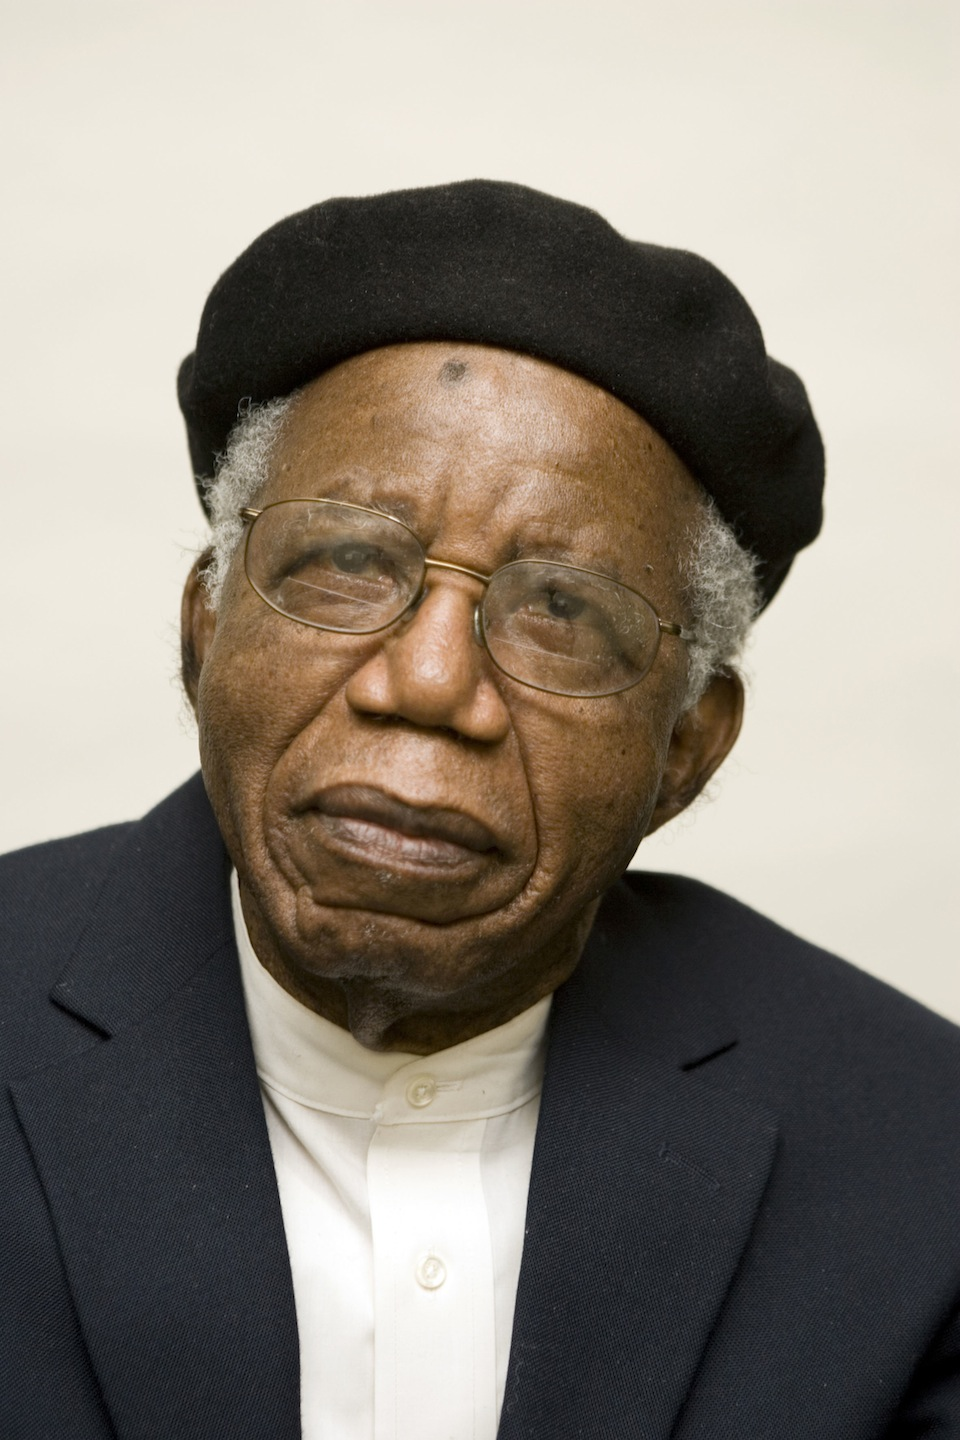 things fall apart by chinua achebe analysis The role of women in things fall apart june chun '94 (english 32, 1990) chinua achebe's things fall apart portrays africa, particularly the ibo society, right before the arrival of the white man.